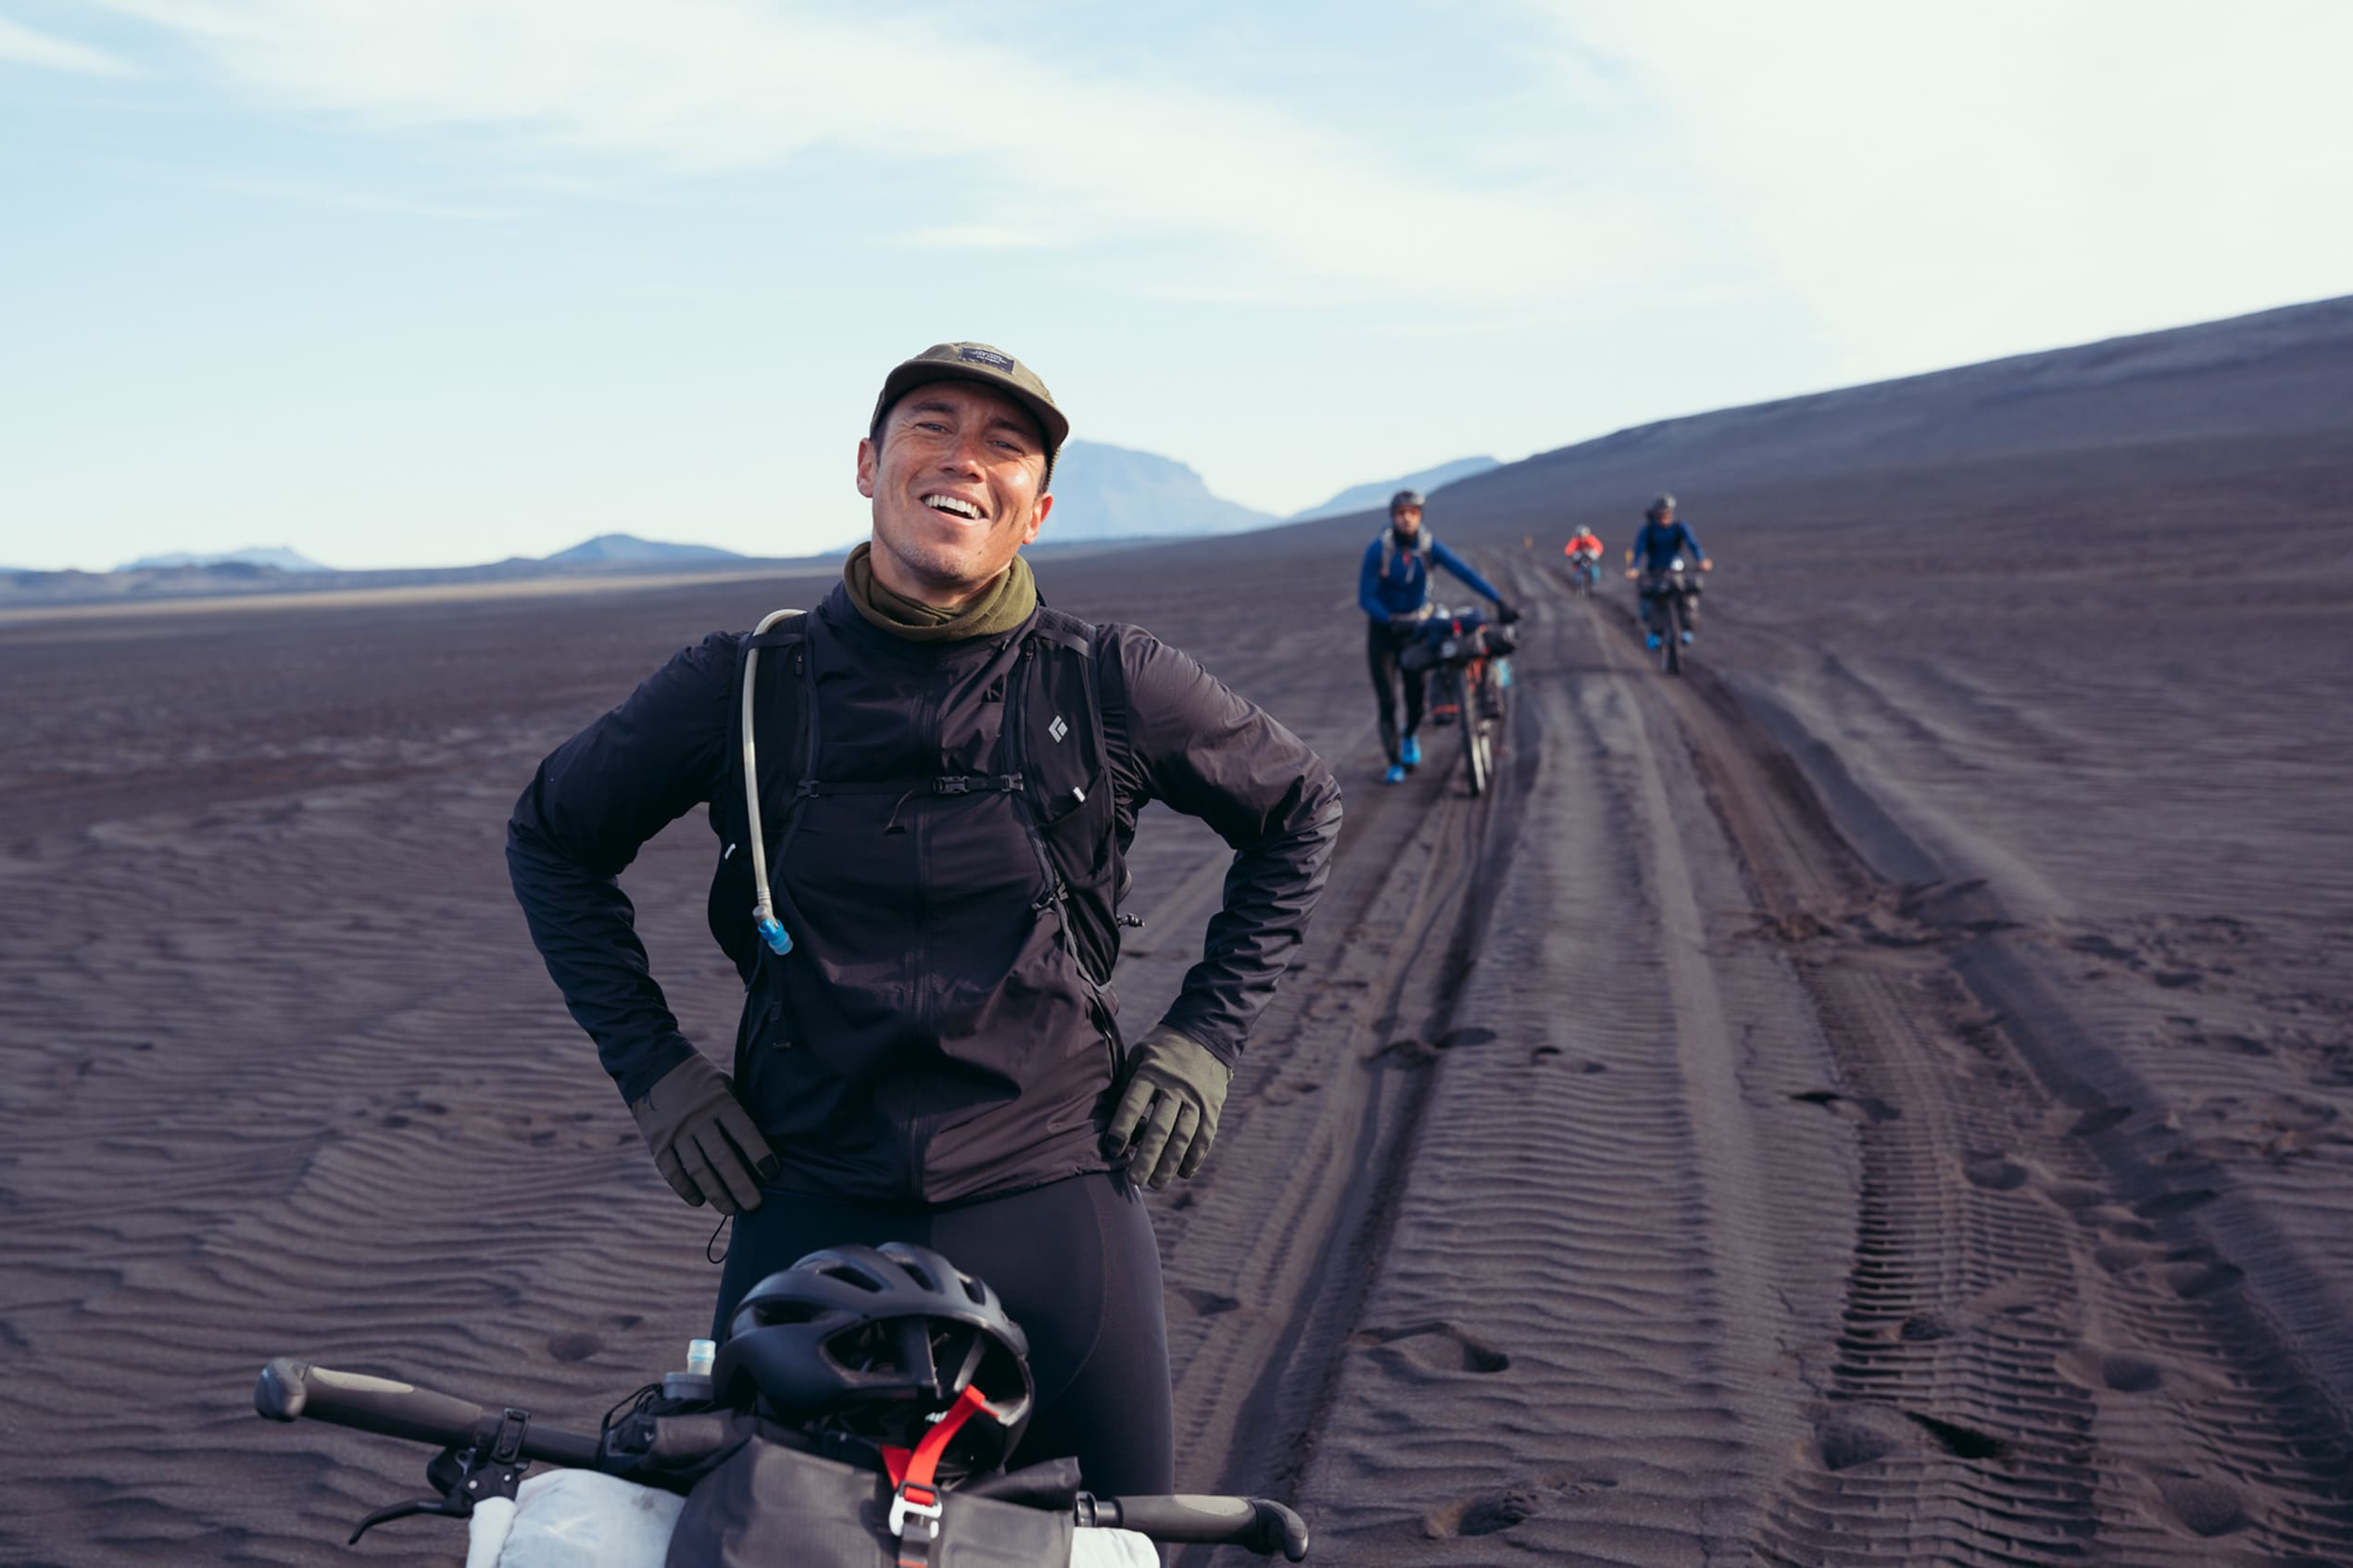 Chris Burkard pictured during his bikepacking ride across Iceland